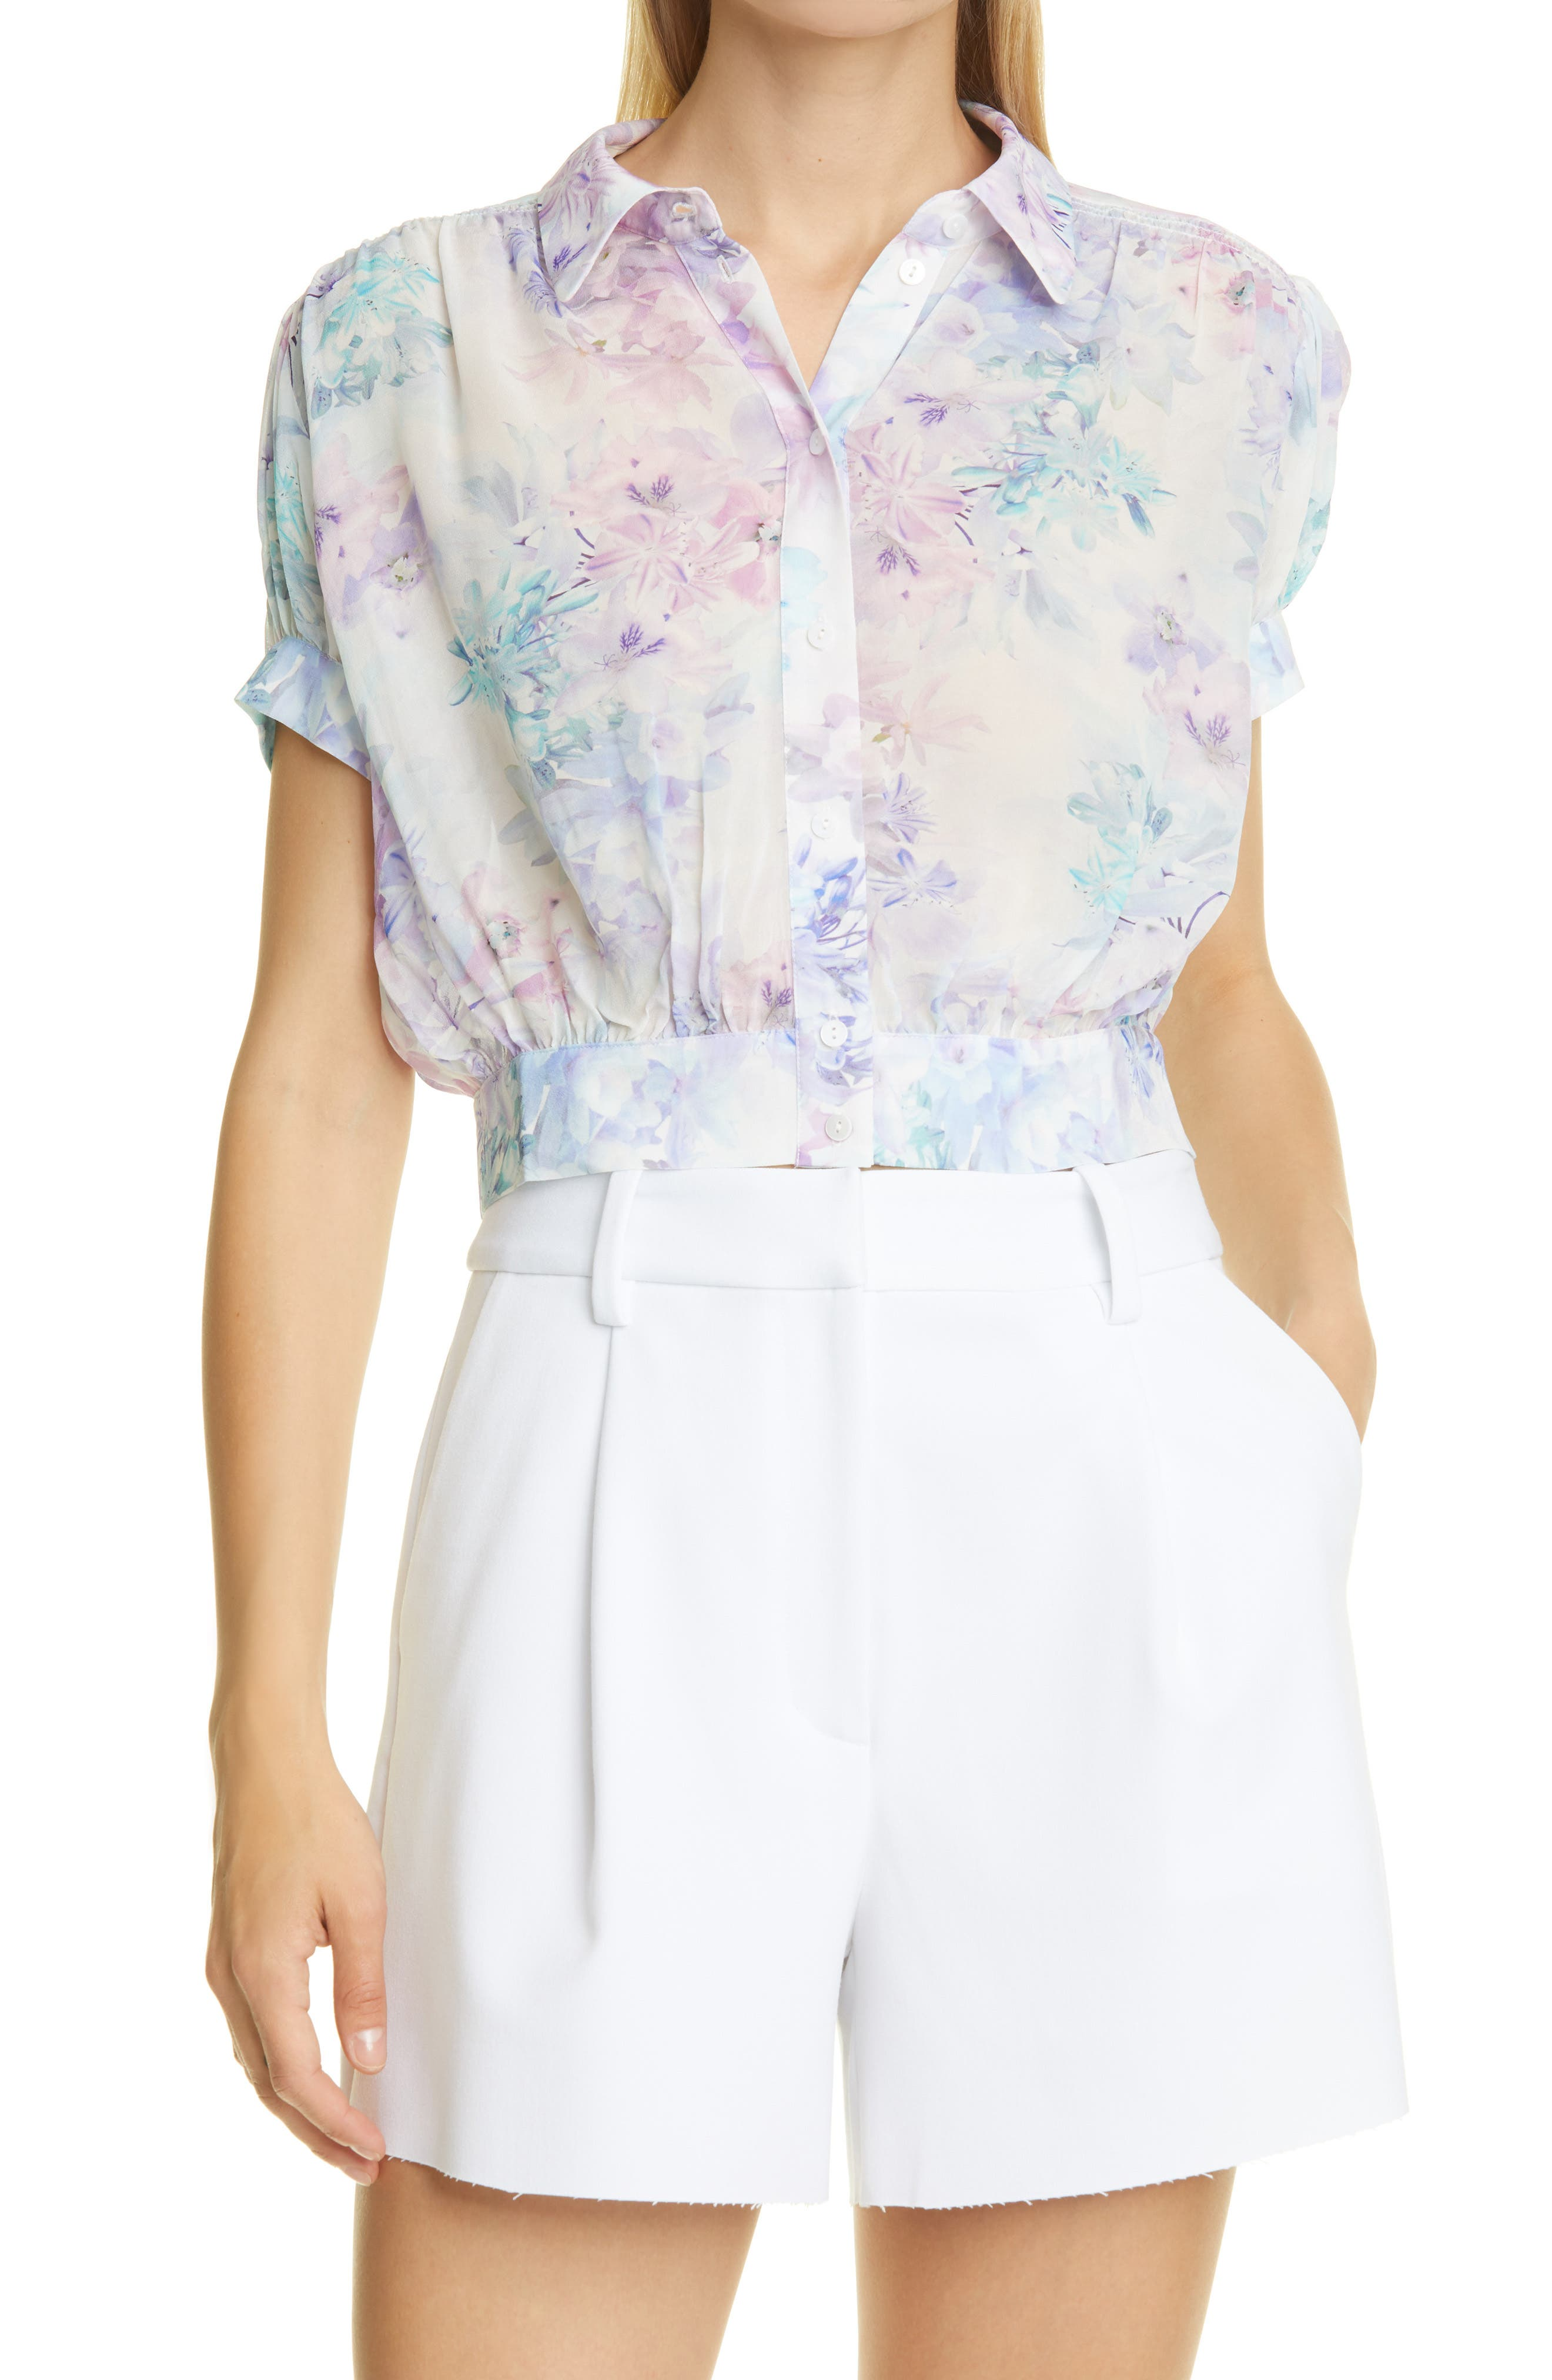 Floral Print Short Sleeve Button-Up Blouse